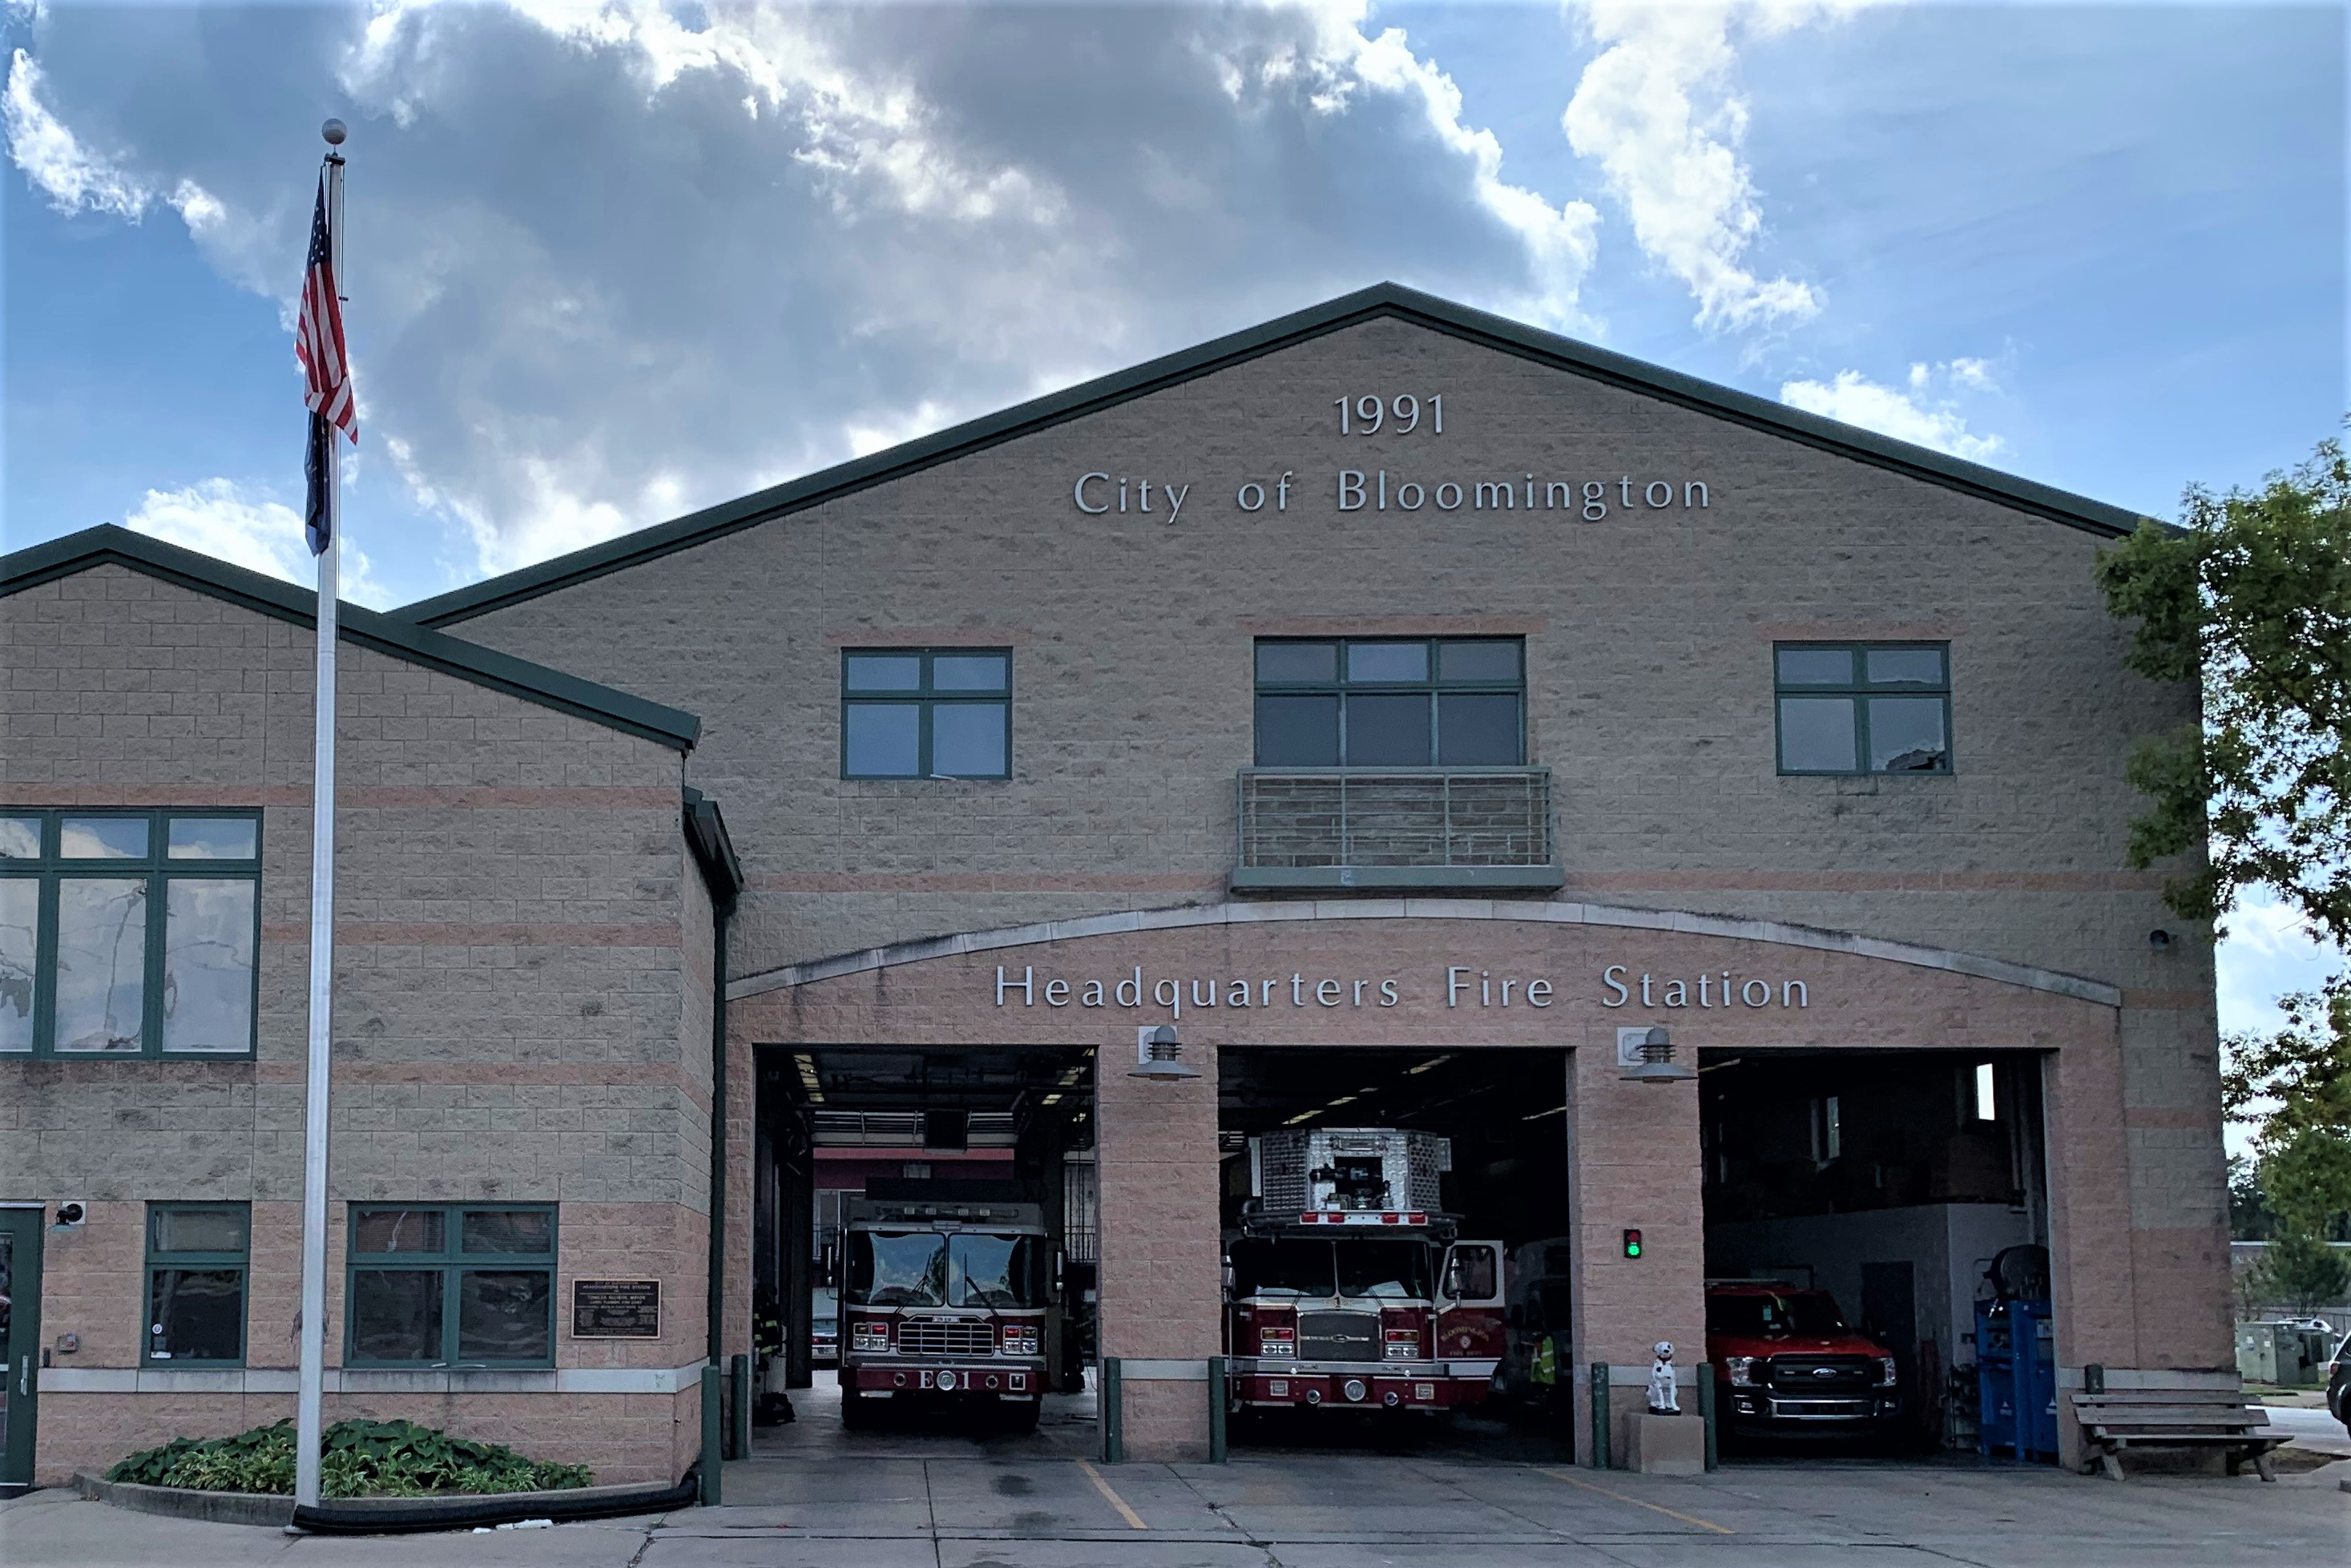 The exterior of the Bloomington Fire Station Headquarters.